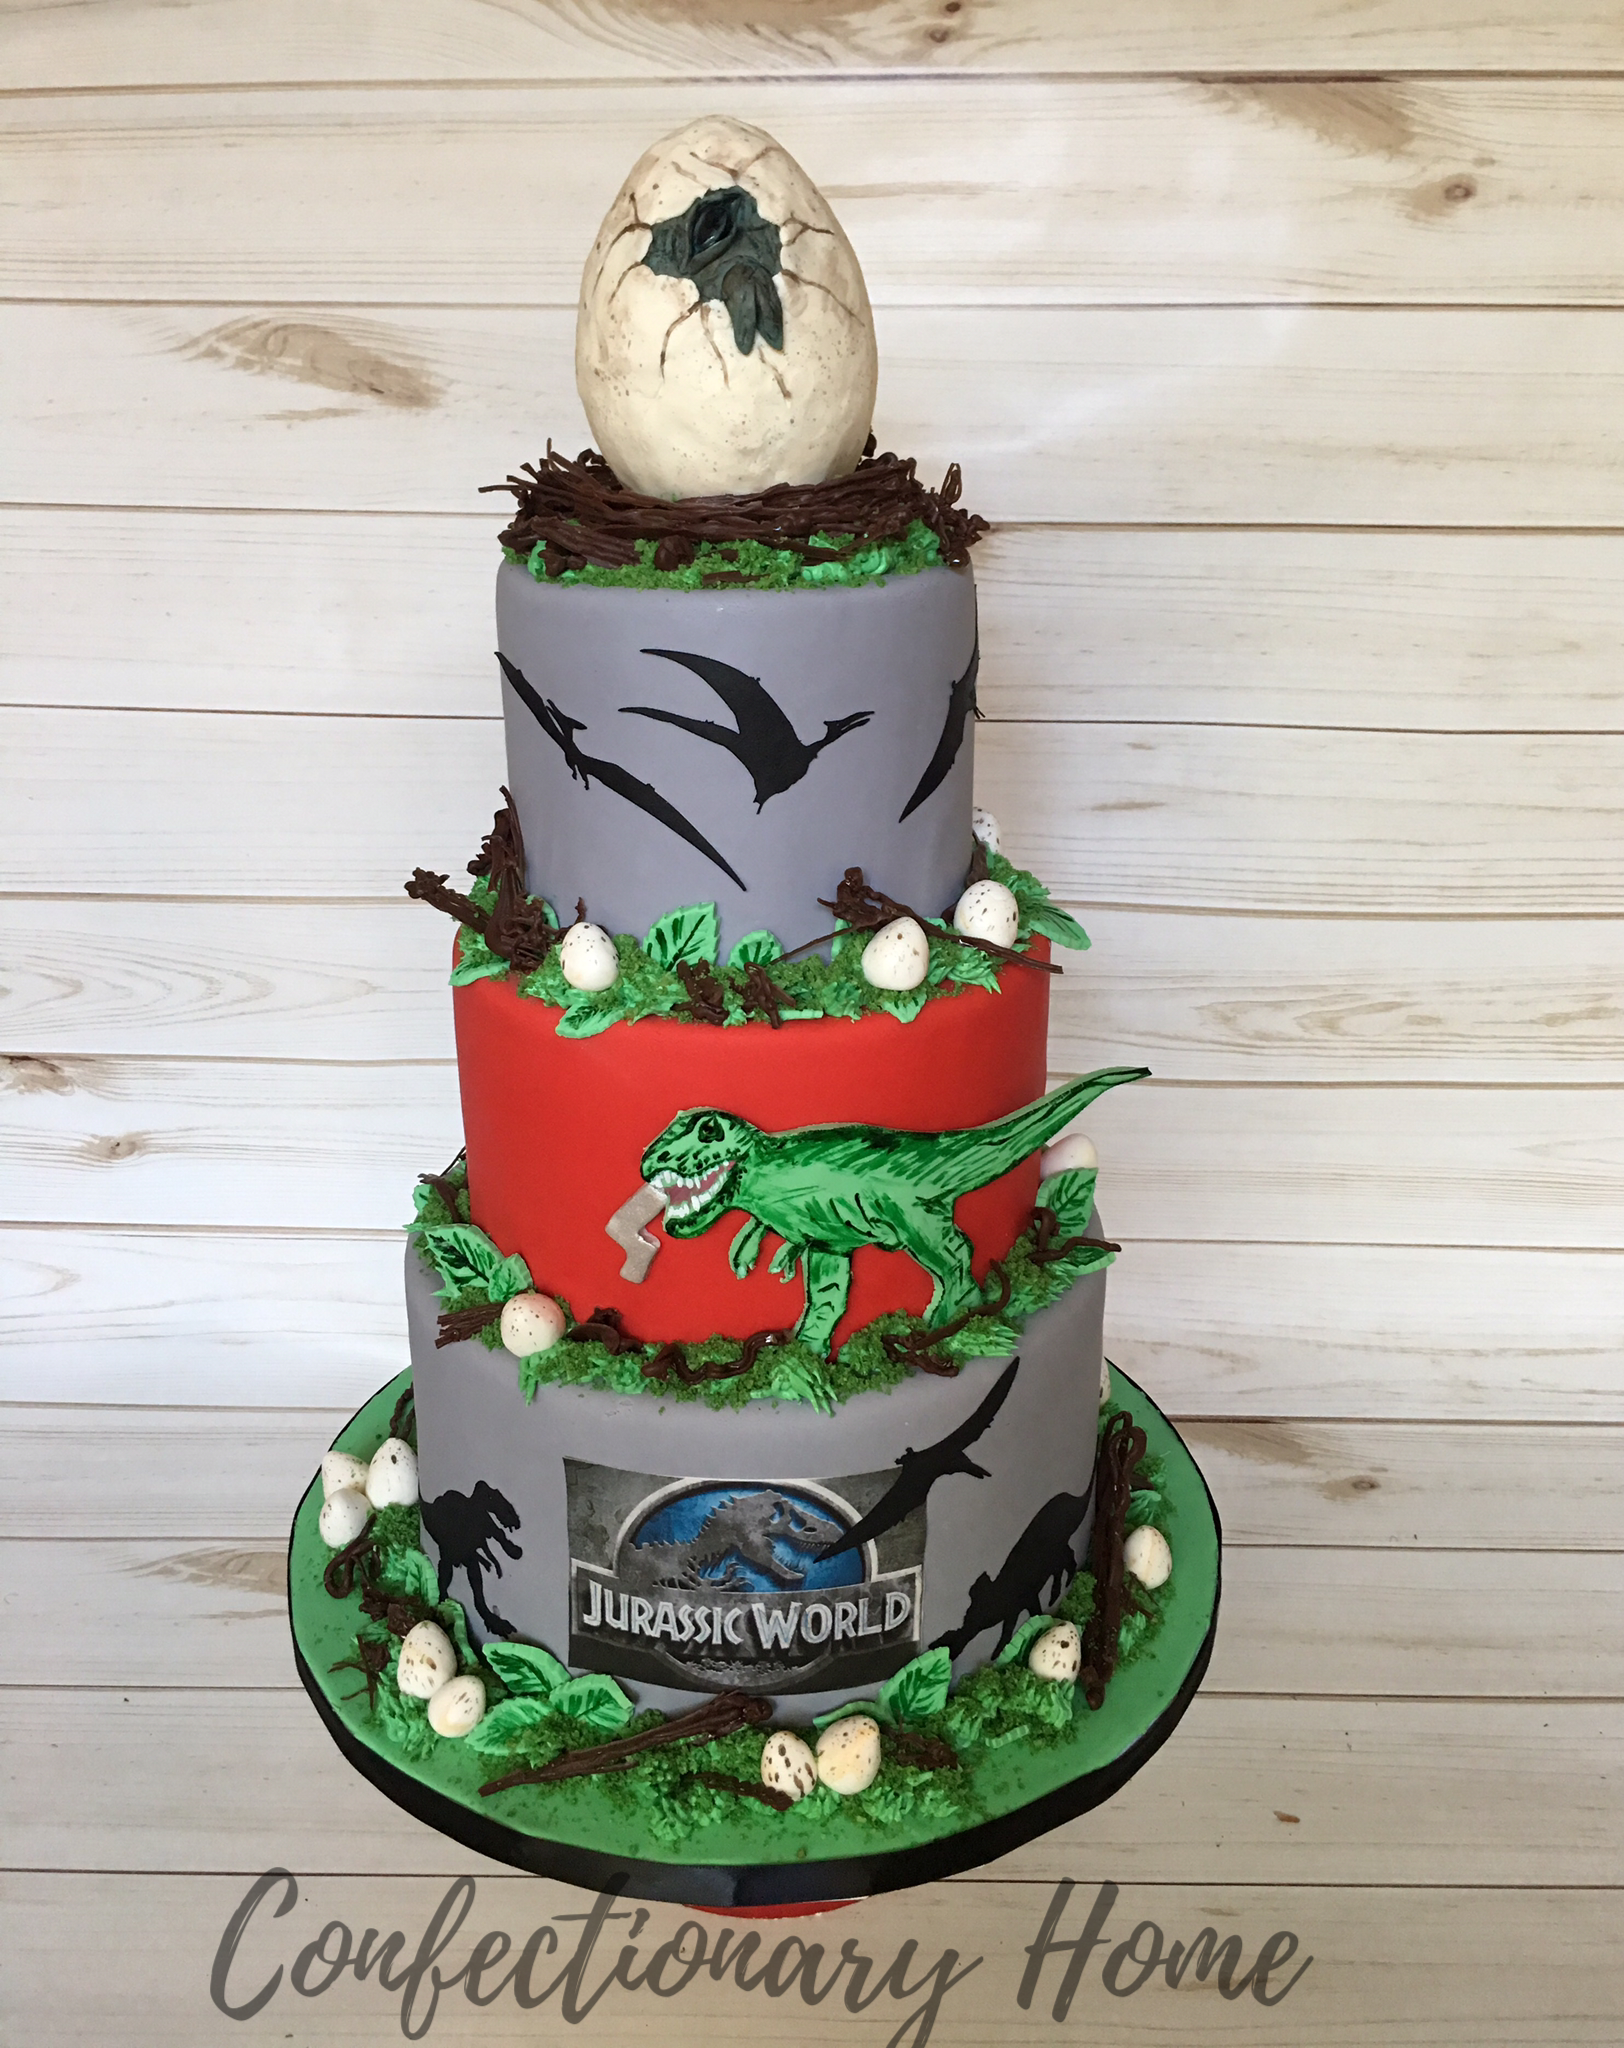 Dinosaur Egg Themed Birthday Cake The Includes A Hatching Topper 2D T Rex Eating Fondant Number 4 Jurassic World Edible Image